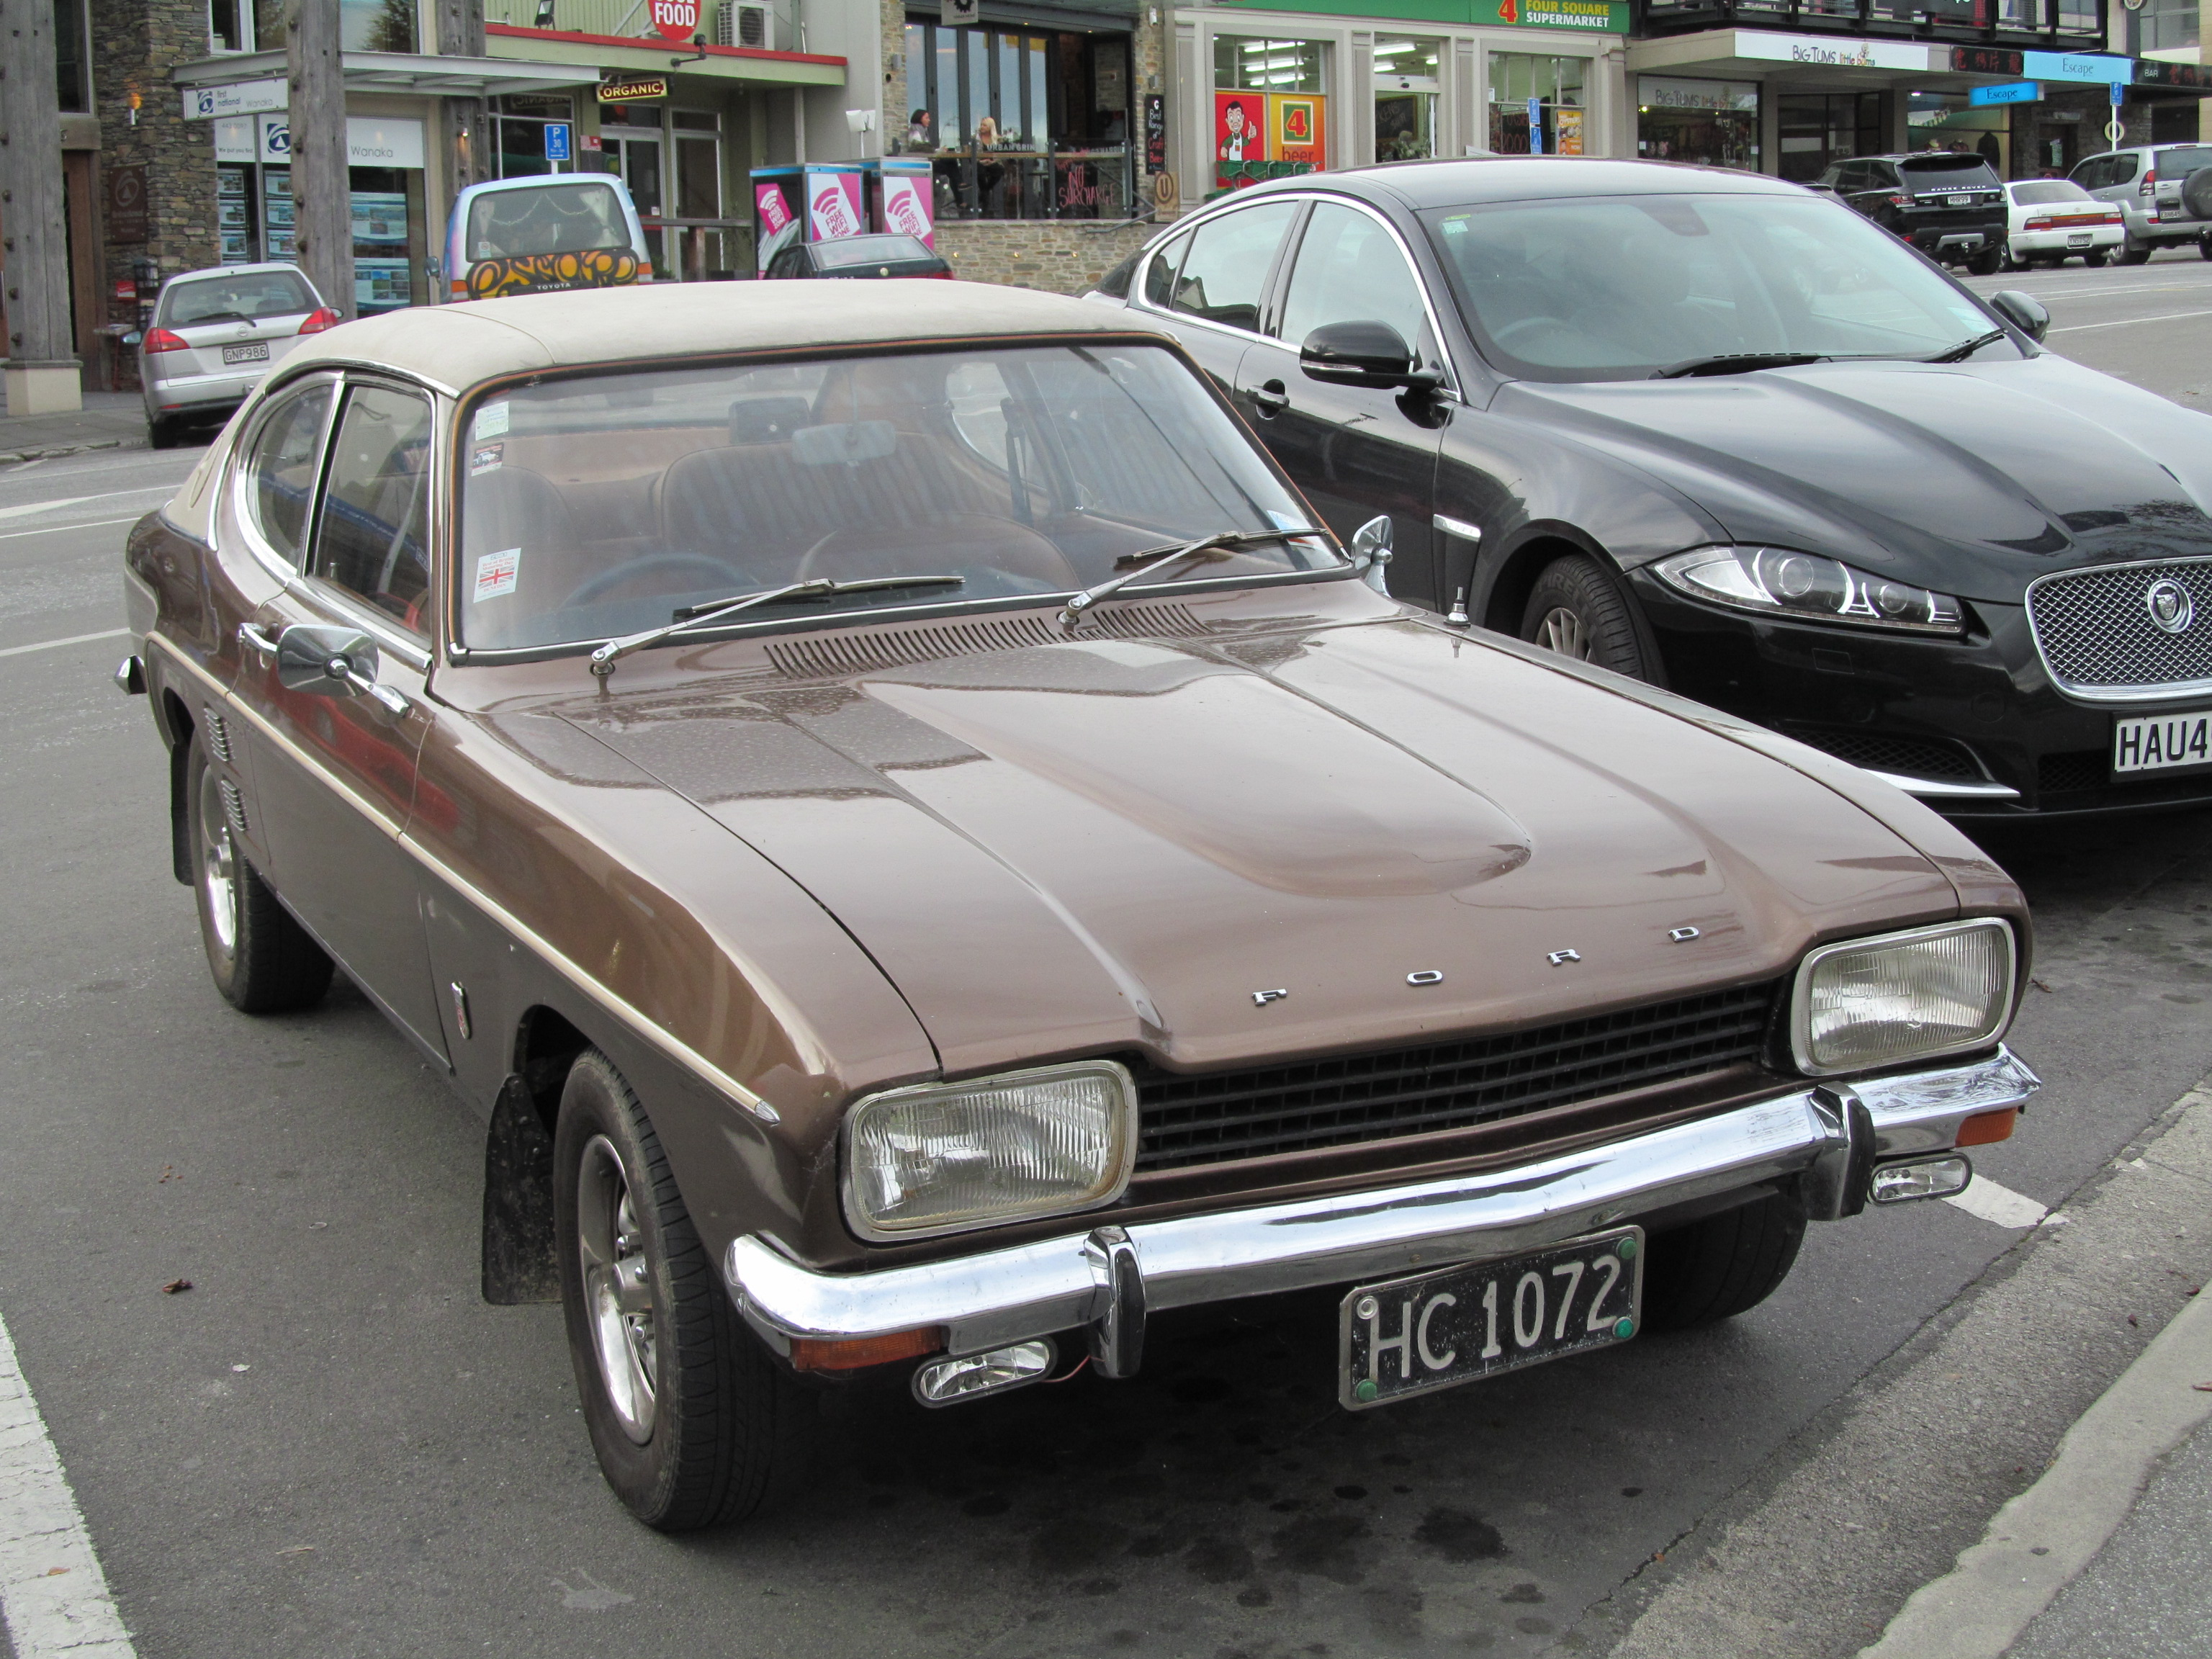 file 1974 ford capri 3000 14967609075 jpg wikimedia commons. Black Bedroom Furniture Sets. Home Design Ideas